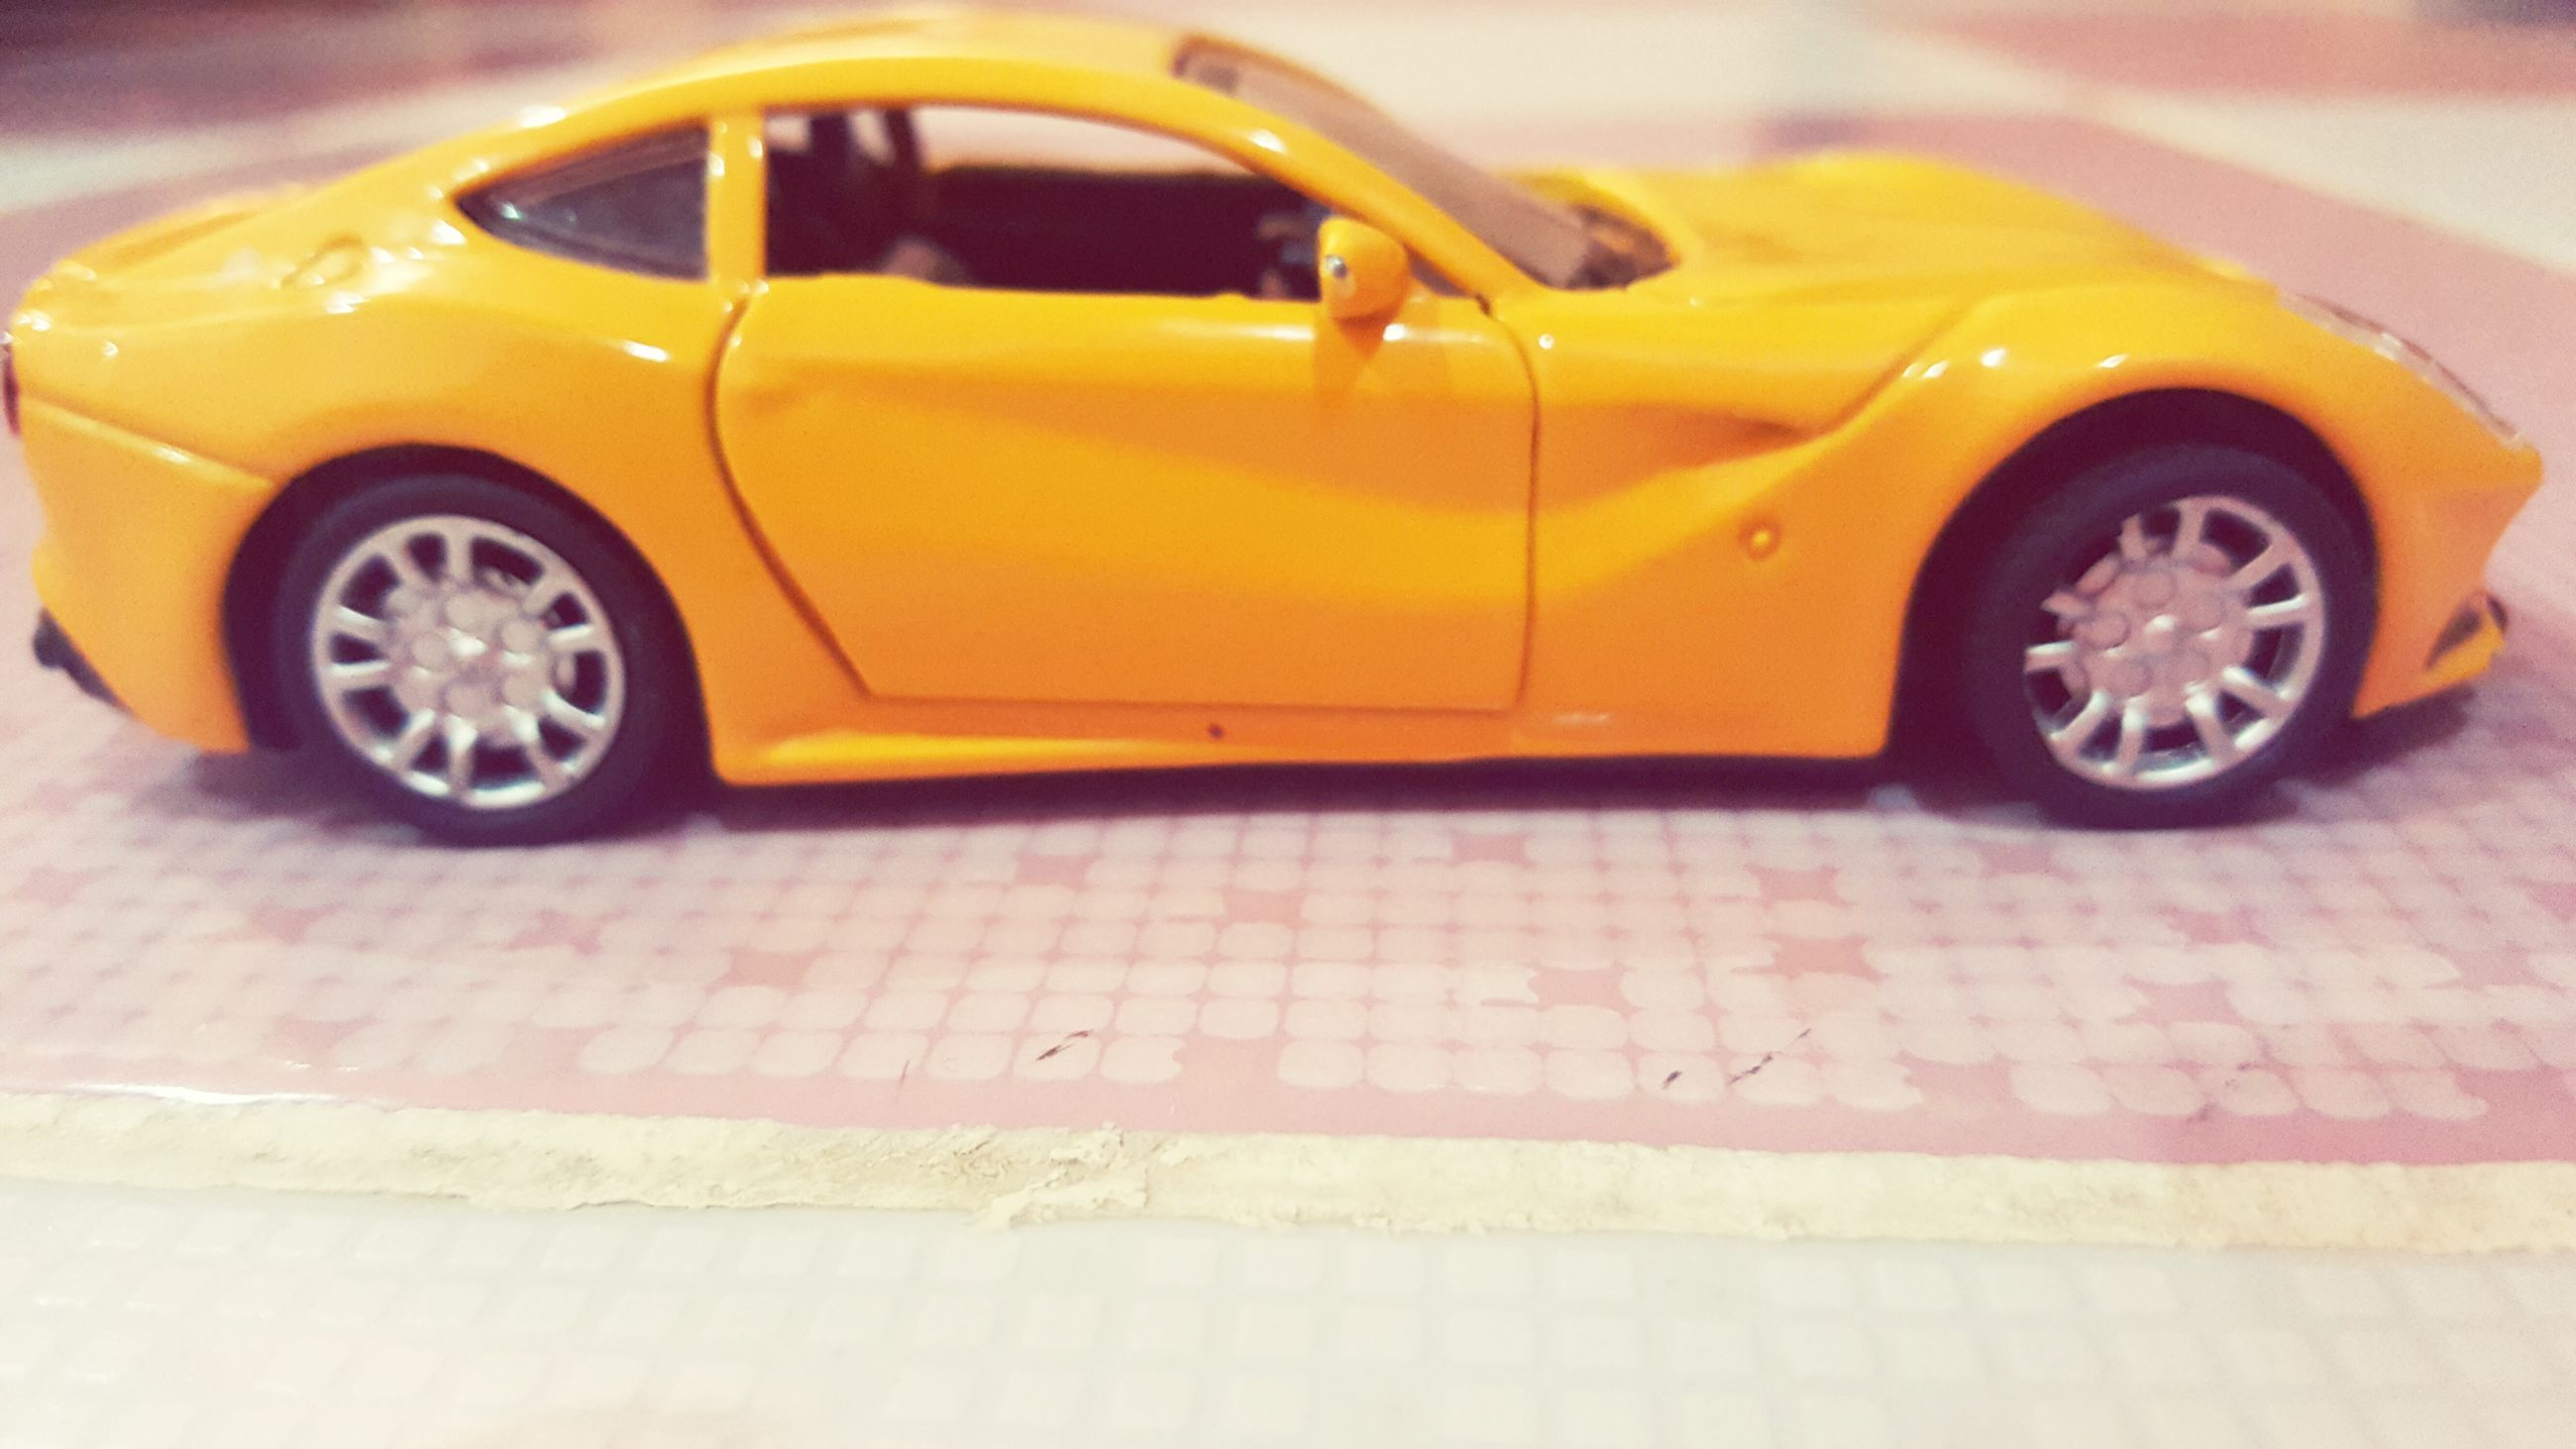 car, transportation, yellow, land vehicle, street, taxi, mode of transport, wheel, collector's car, stationary, outdoors, toy car, day, no people, yellow taxi, tire